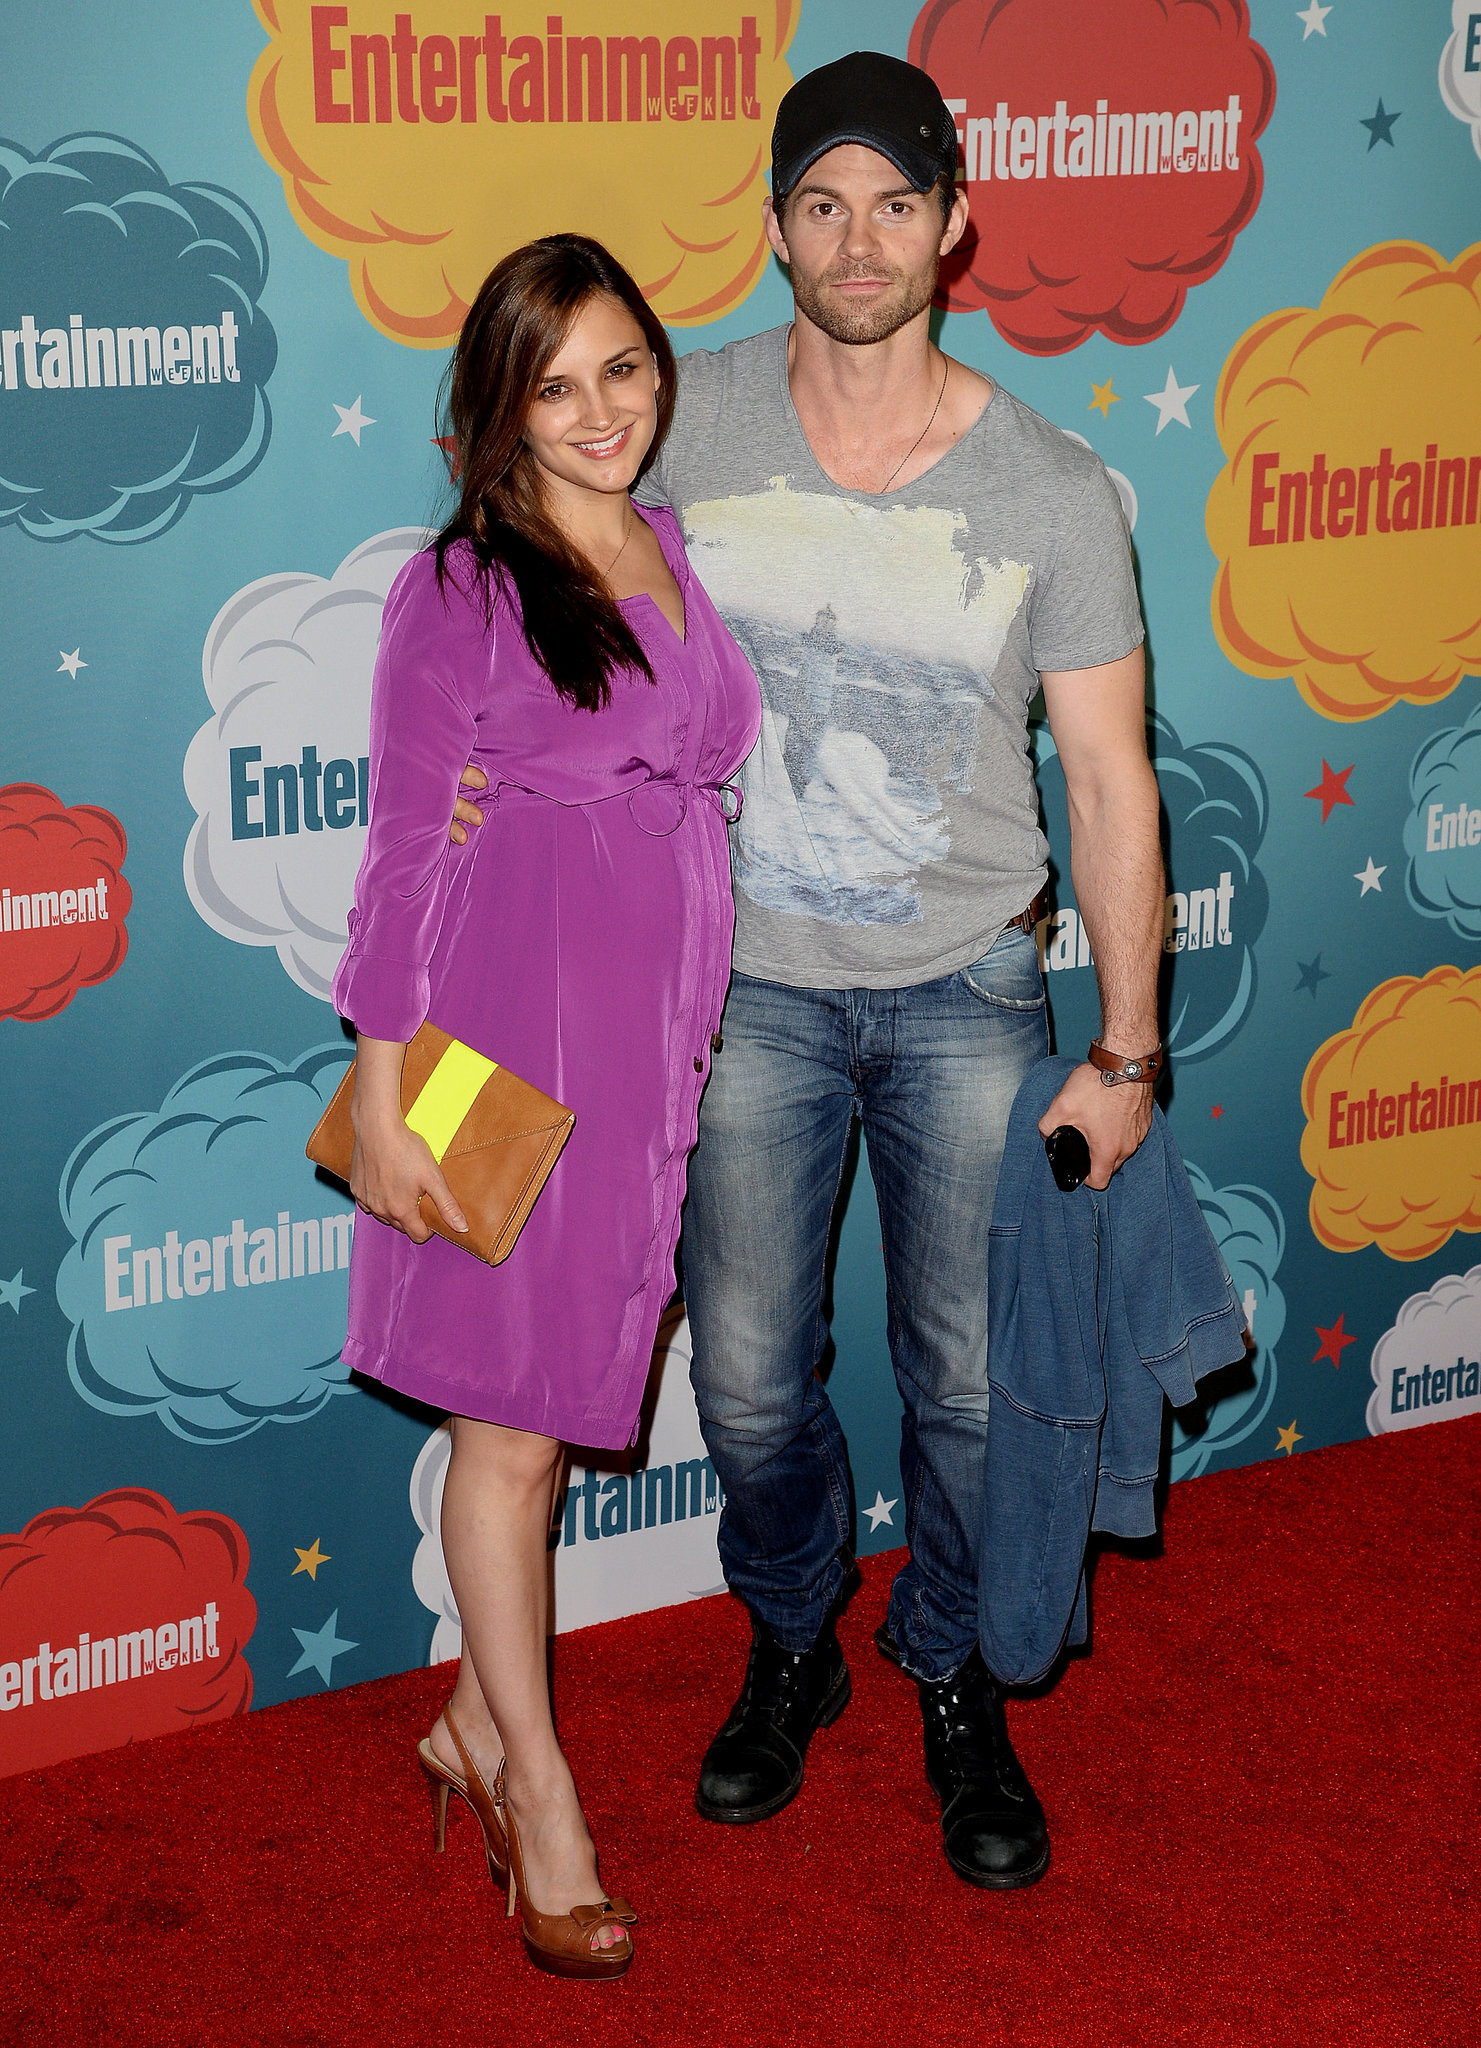 Rachael Leigh Cook and husband Daniel Gillies welcomed their daughter, Charlotte Gillies, in September 2013. The two have been married since 2004.